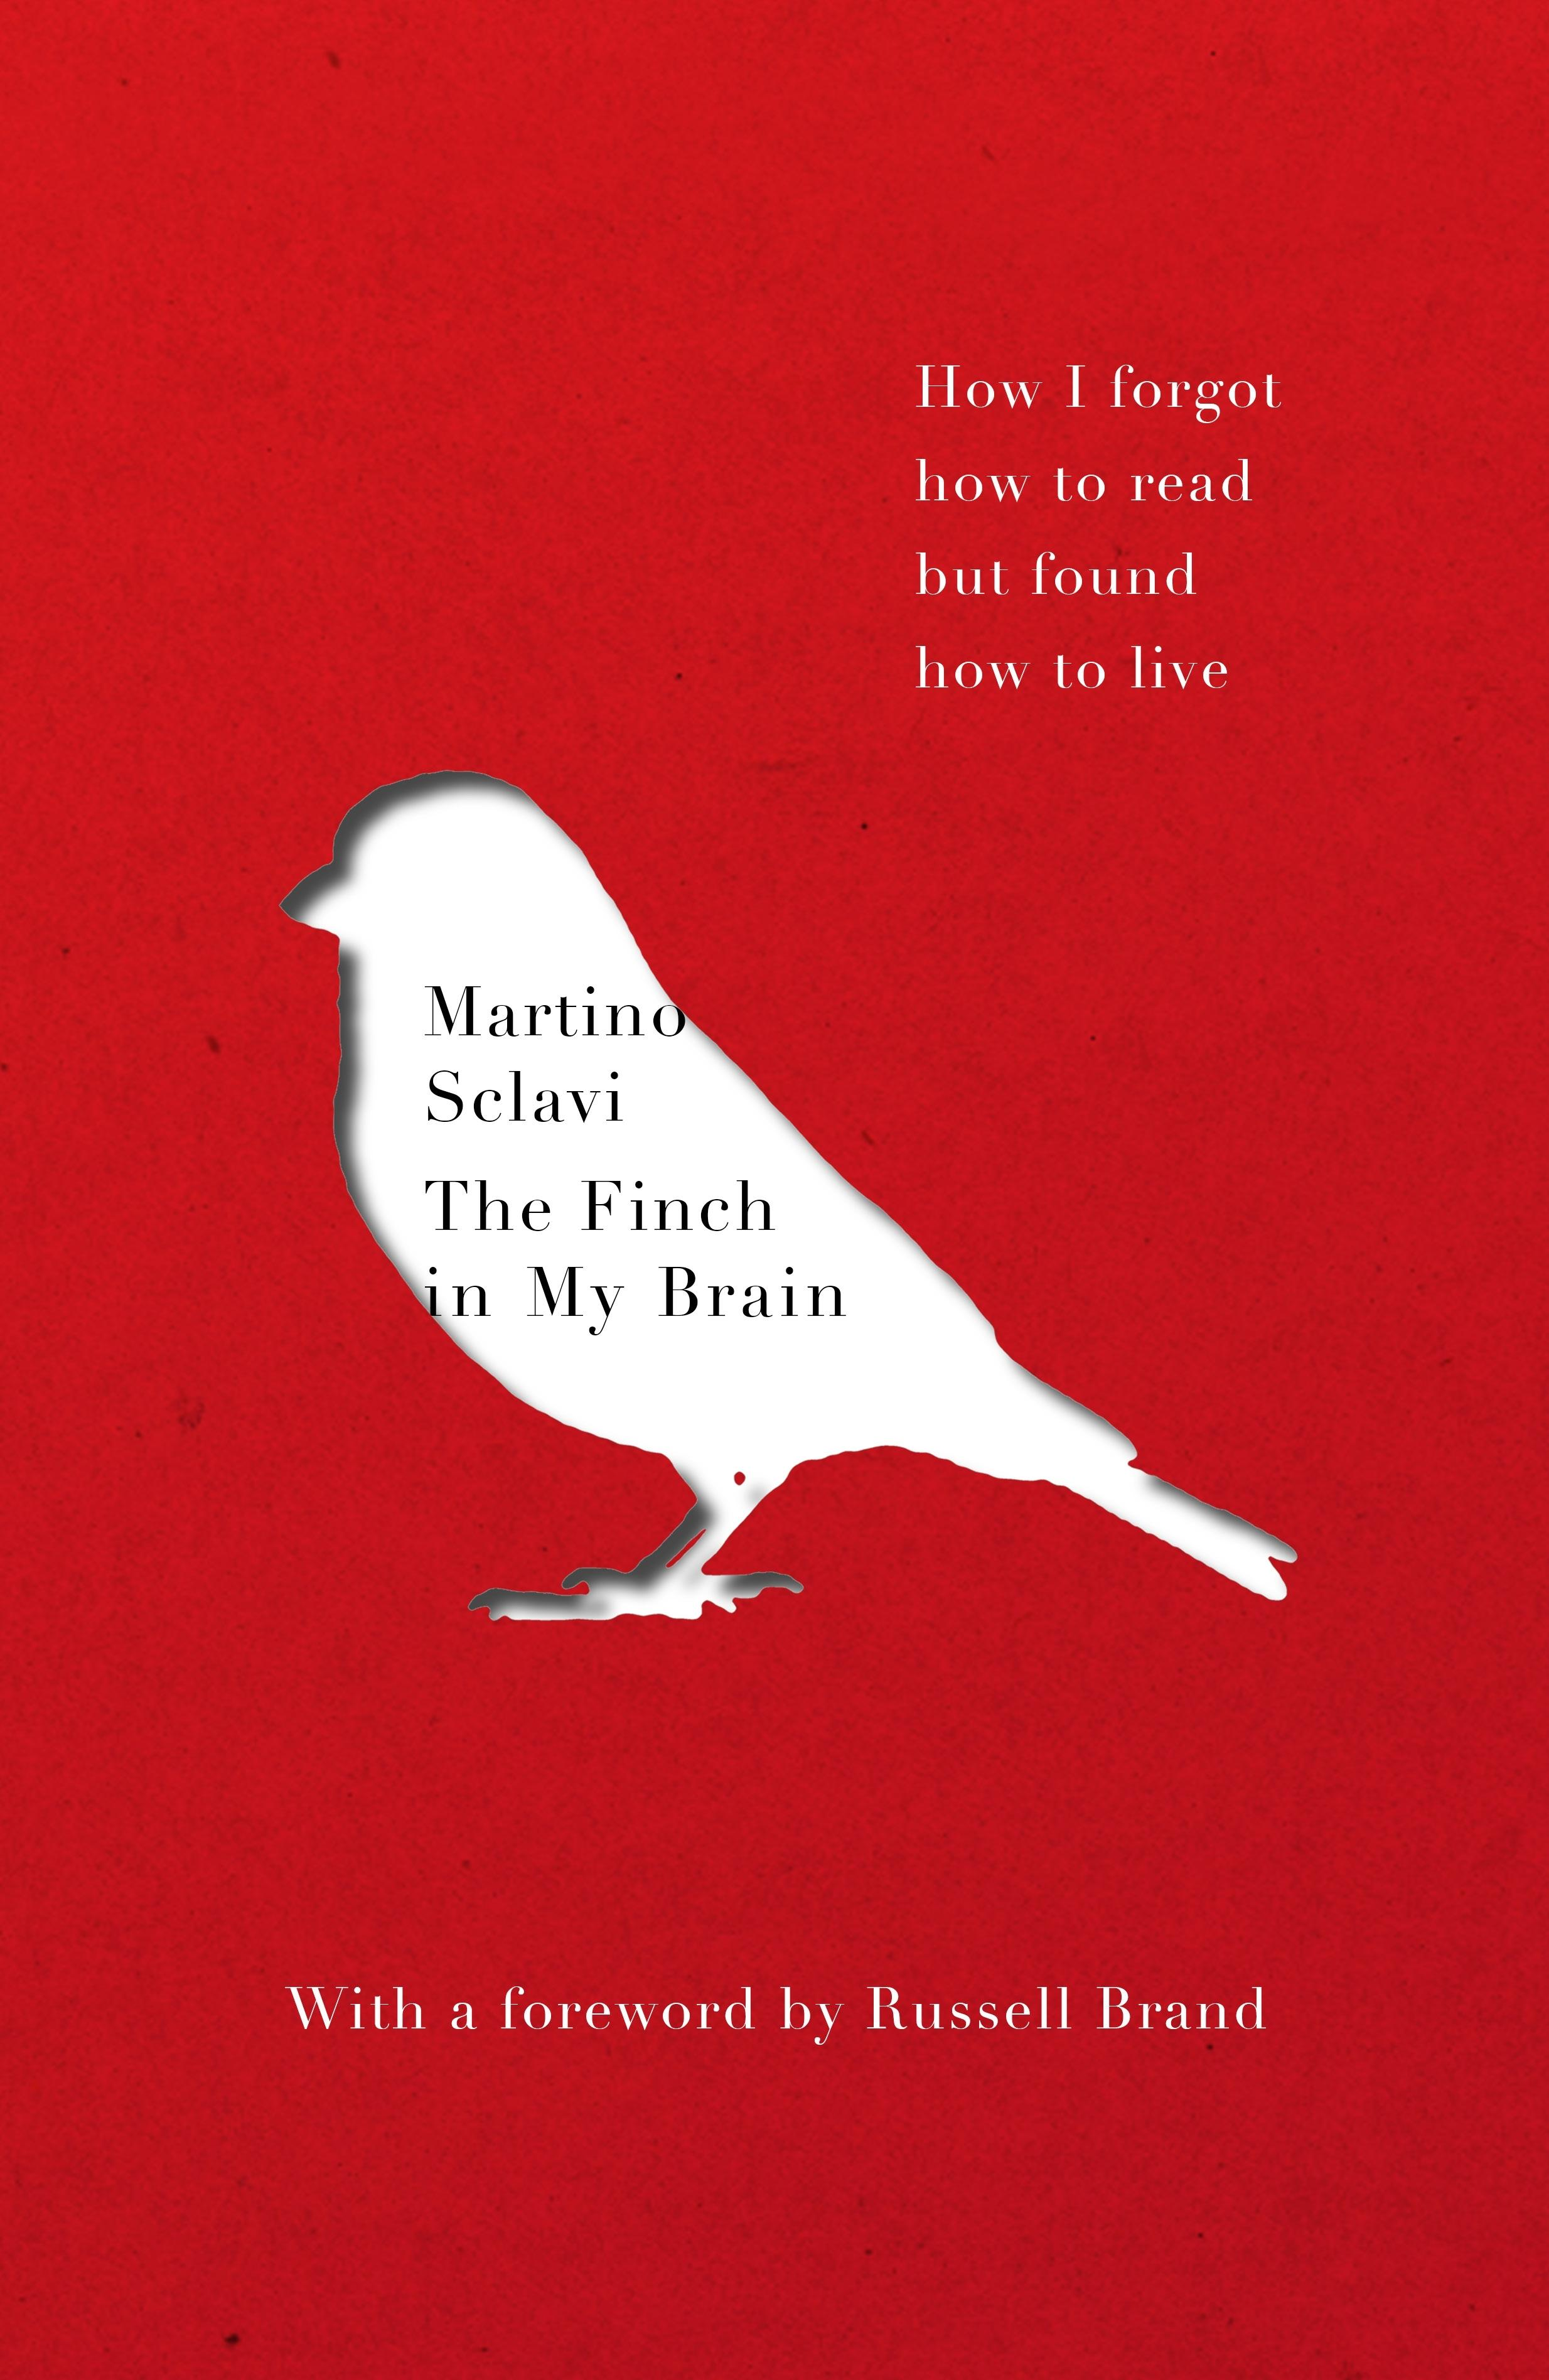 a review of the book the finch